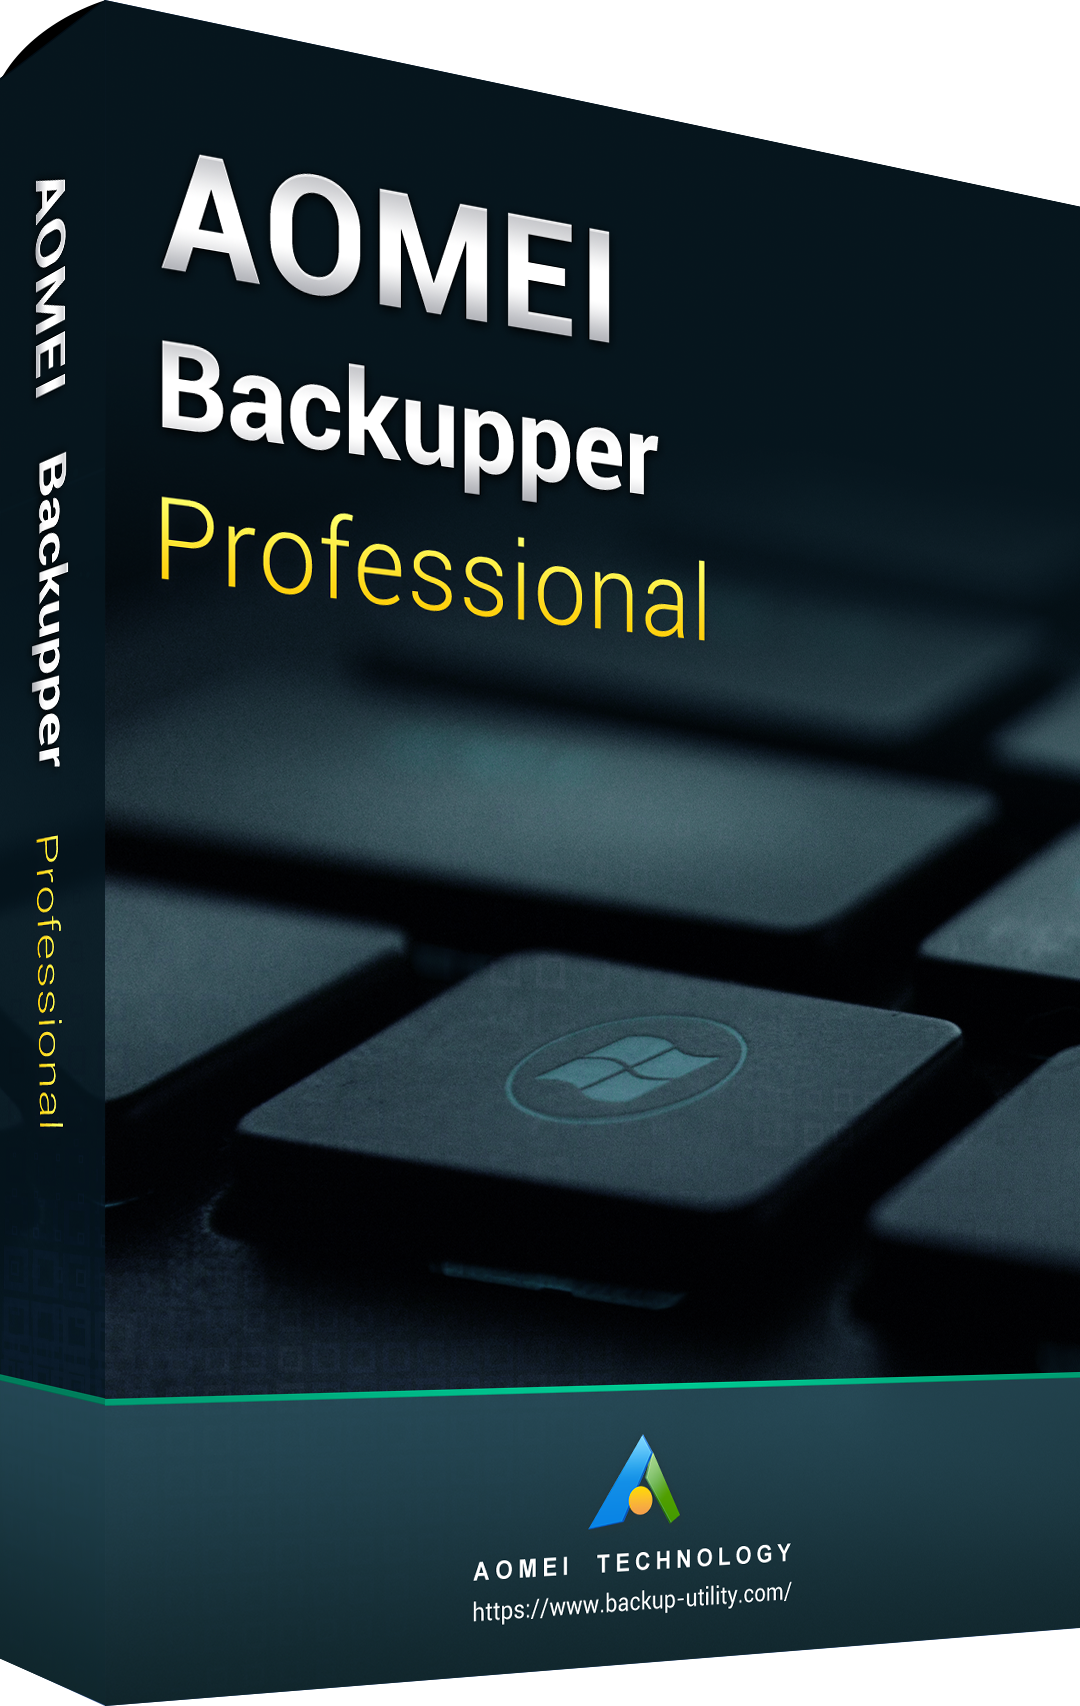 AOMEI Backupper Professional 365 Days 5.7 Edition Key Global